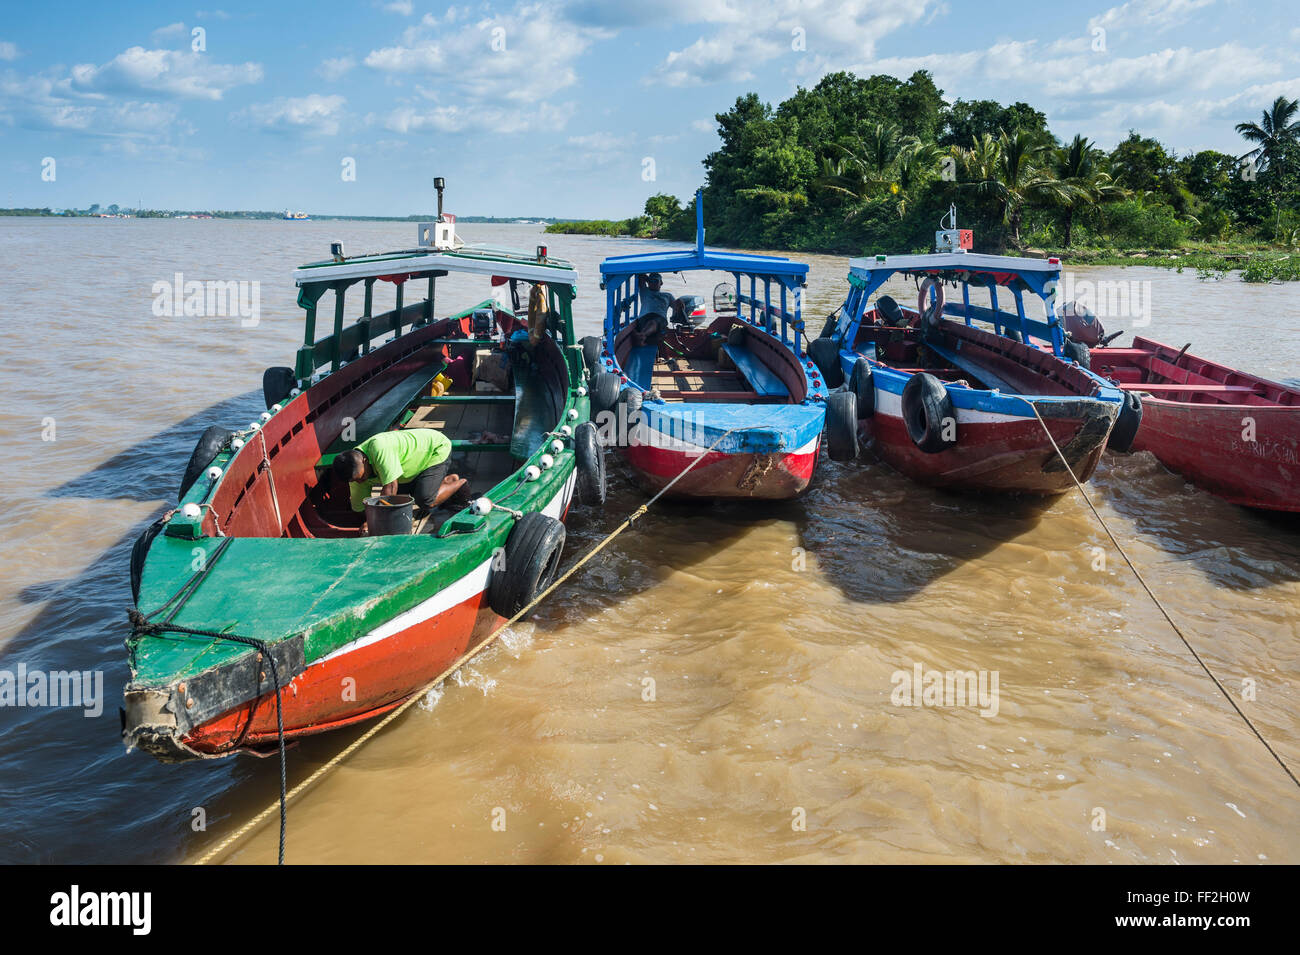 CoRMourfuRM boats on the Suriname River, Paramaribo, Surinam, South America - Stock Image